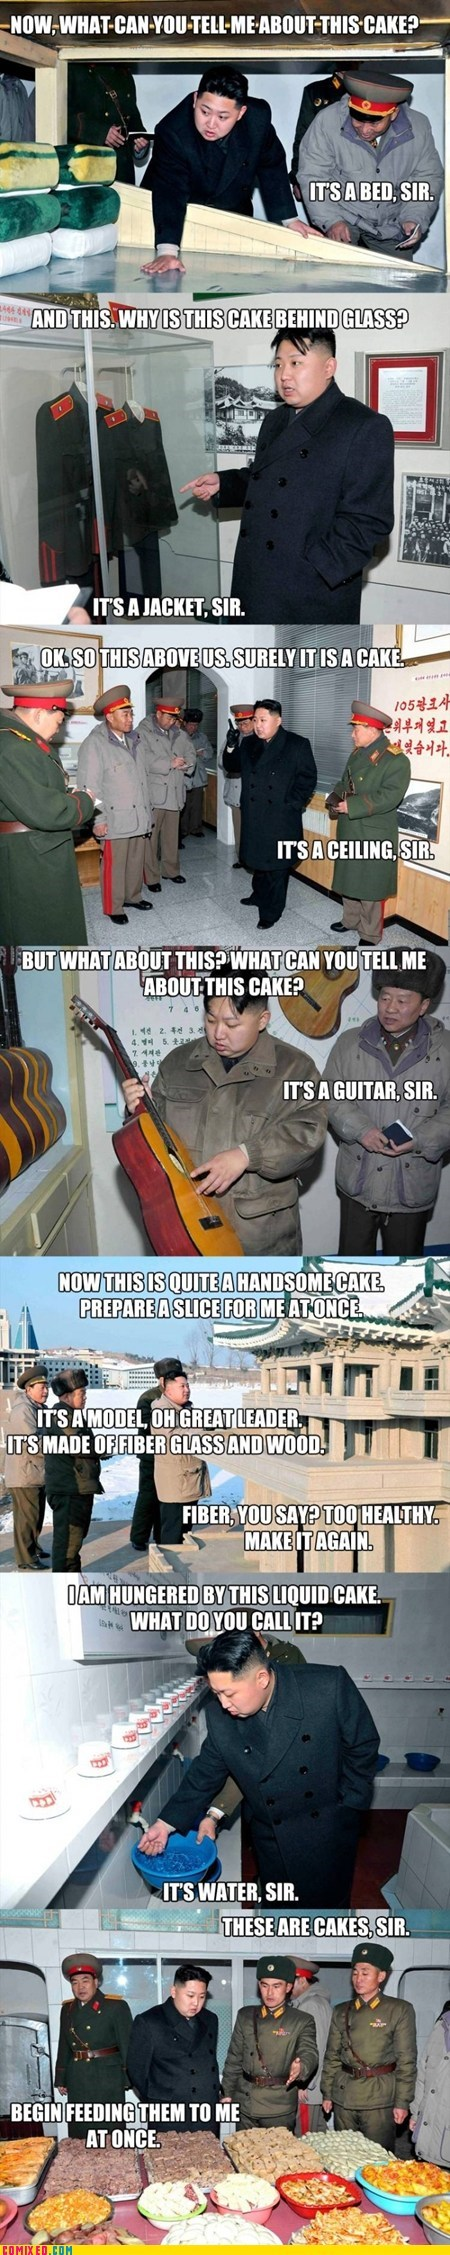 best of week,cake,kim jung-un,North Korea,successor,the internets